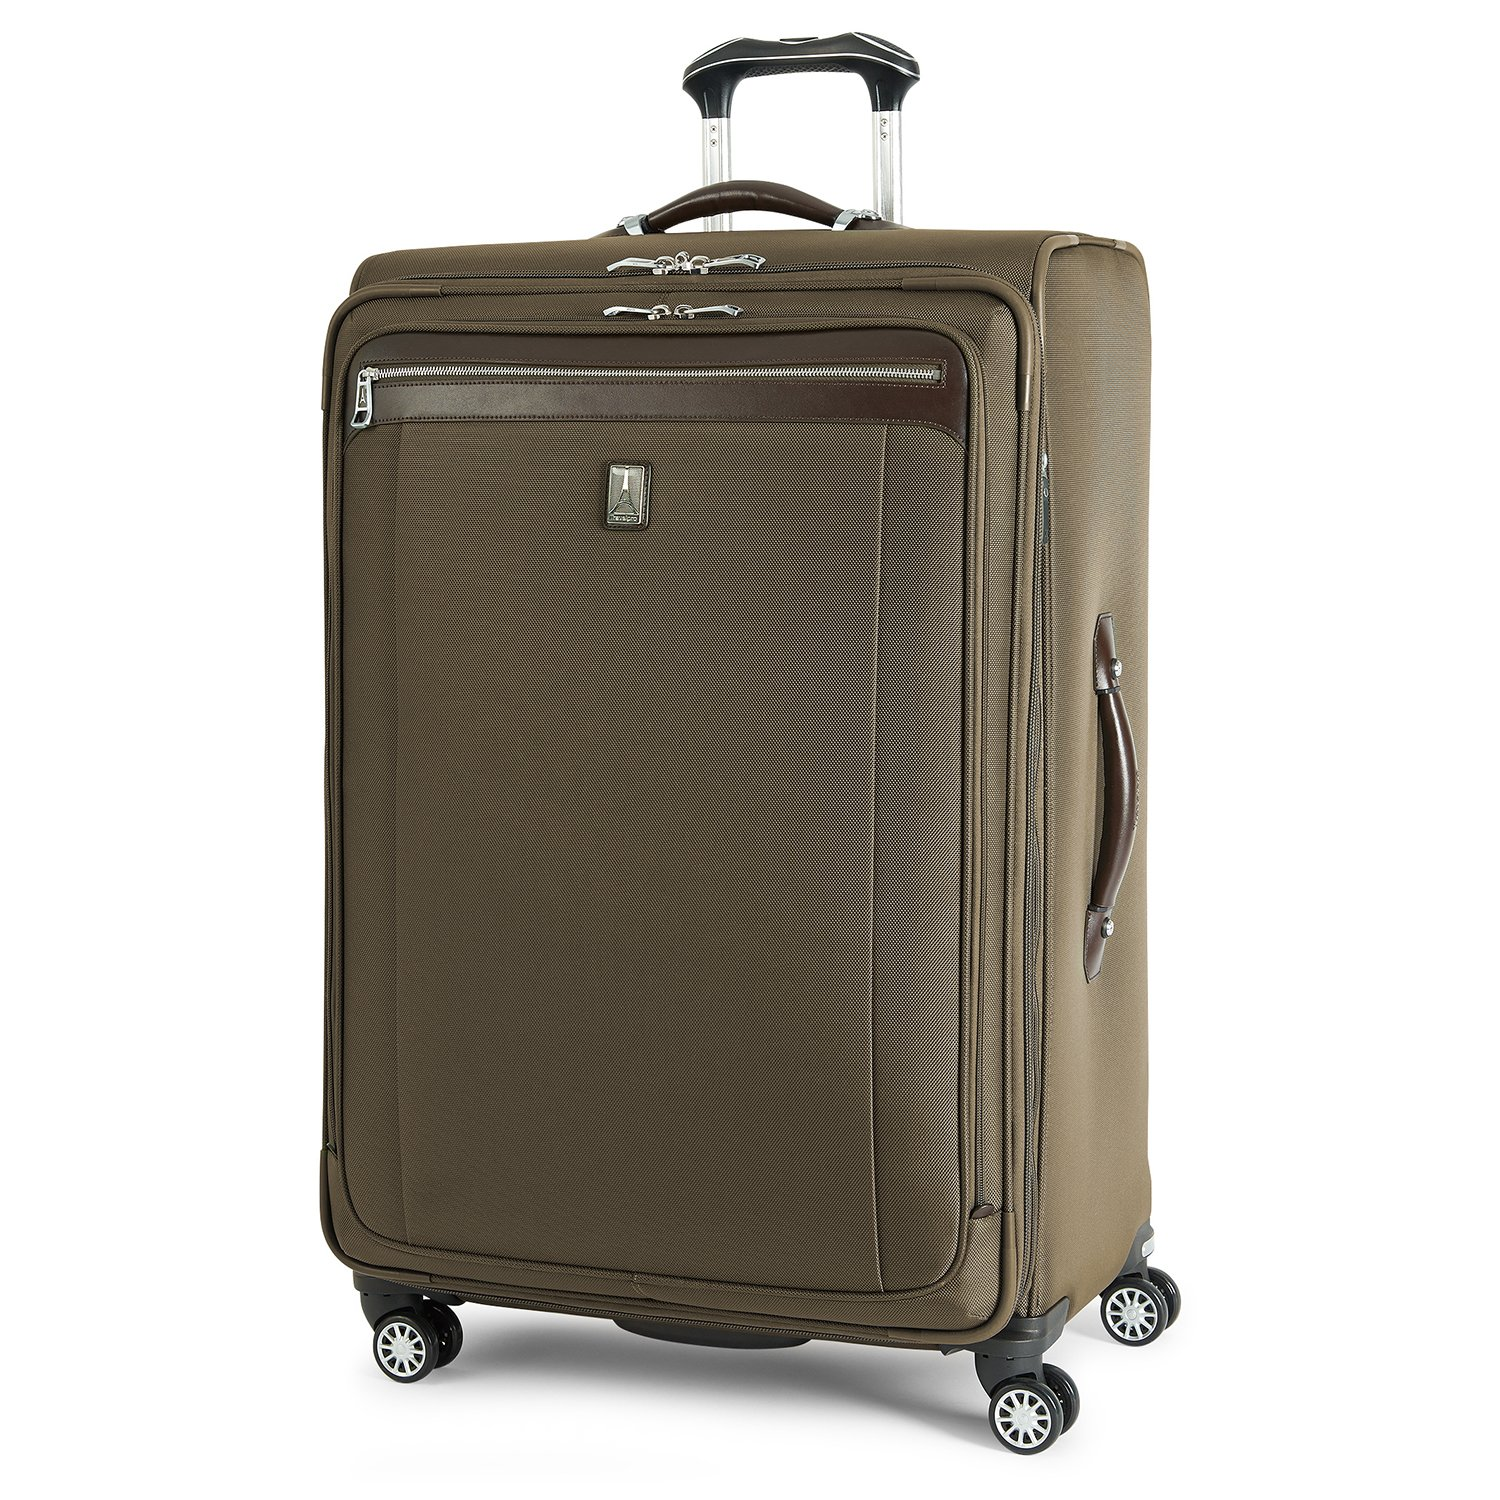 Travelpro PlatinumMagna2 Expandable Spinner Suiter Suitcase, 29-in., Black Travelpro International Inc. 409156901